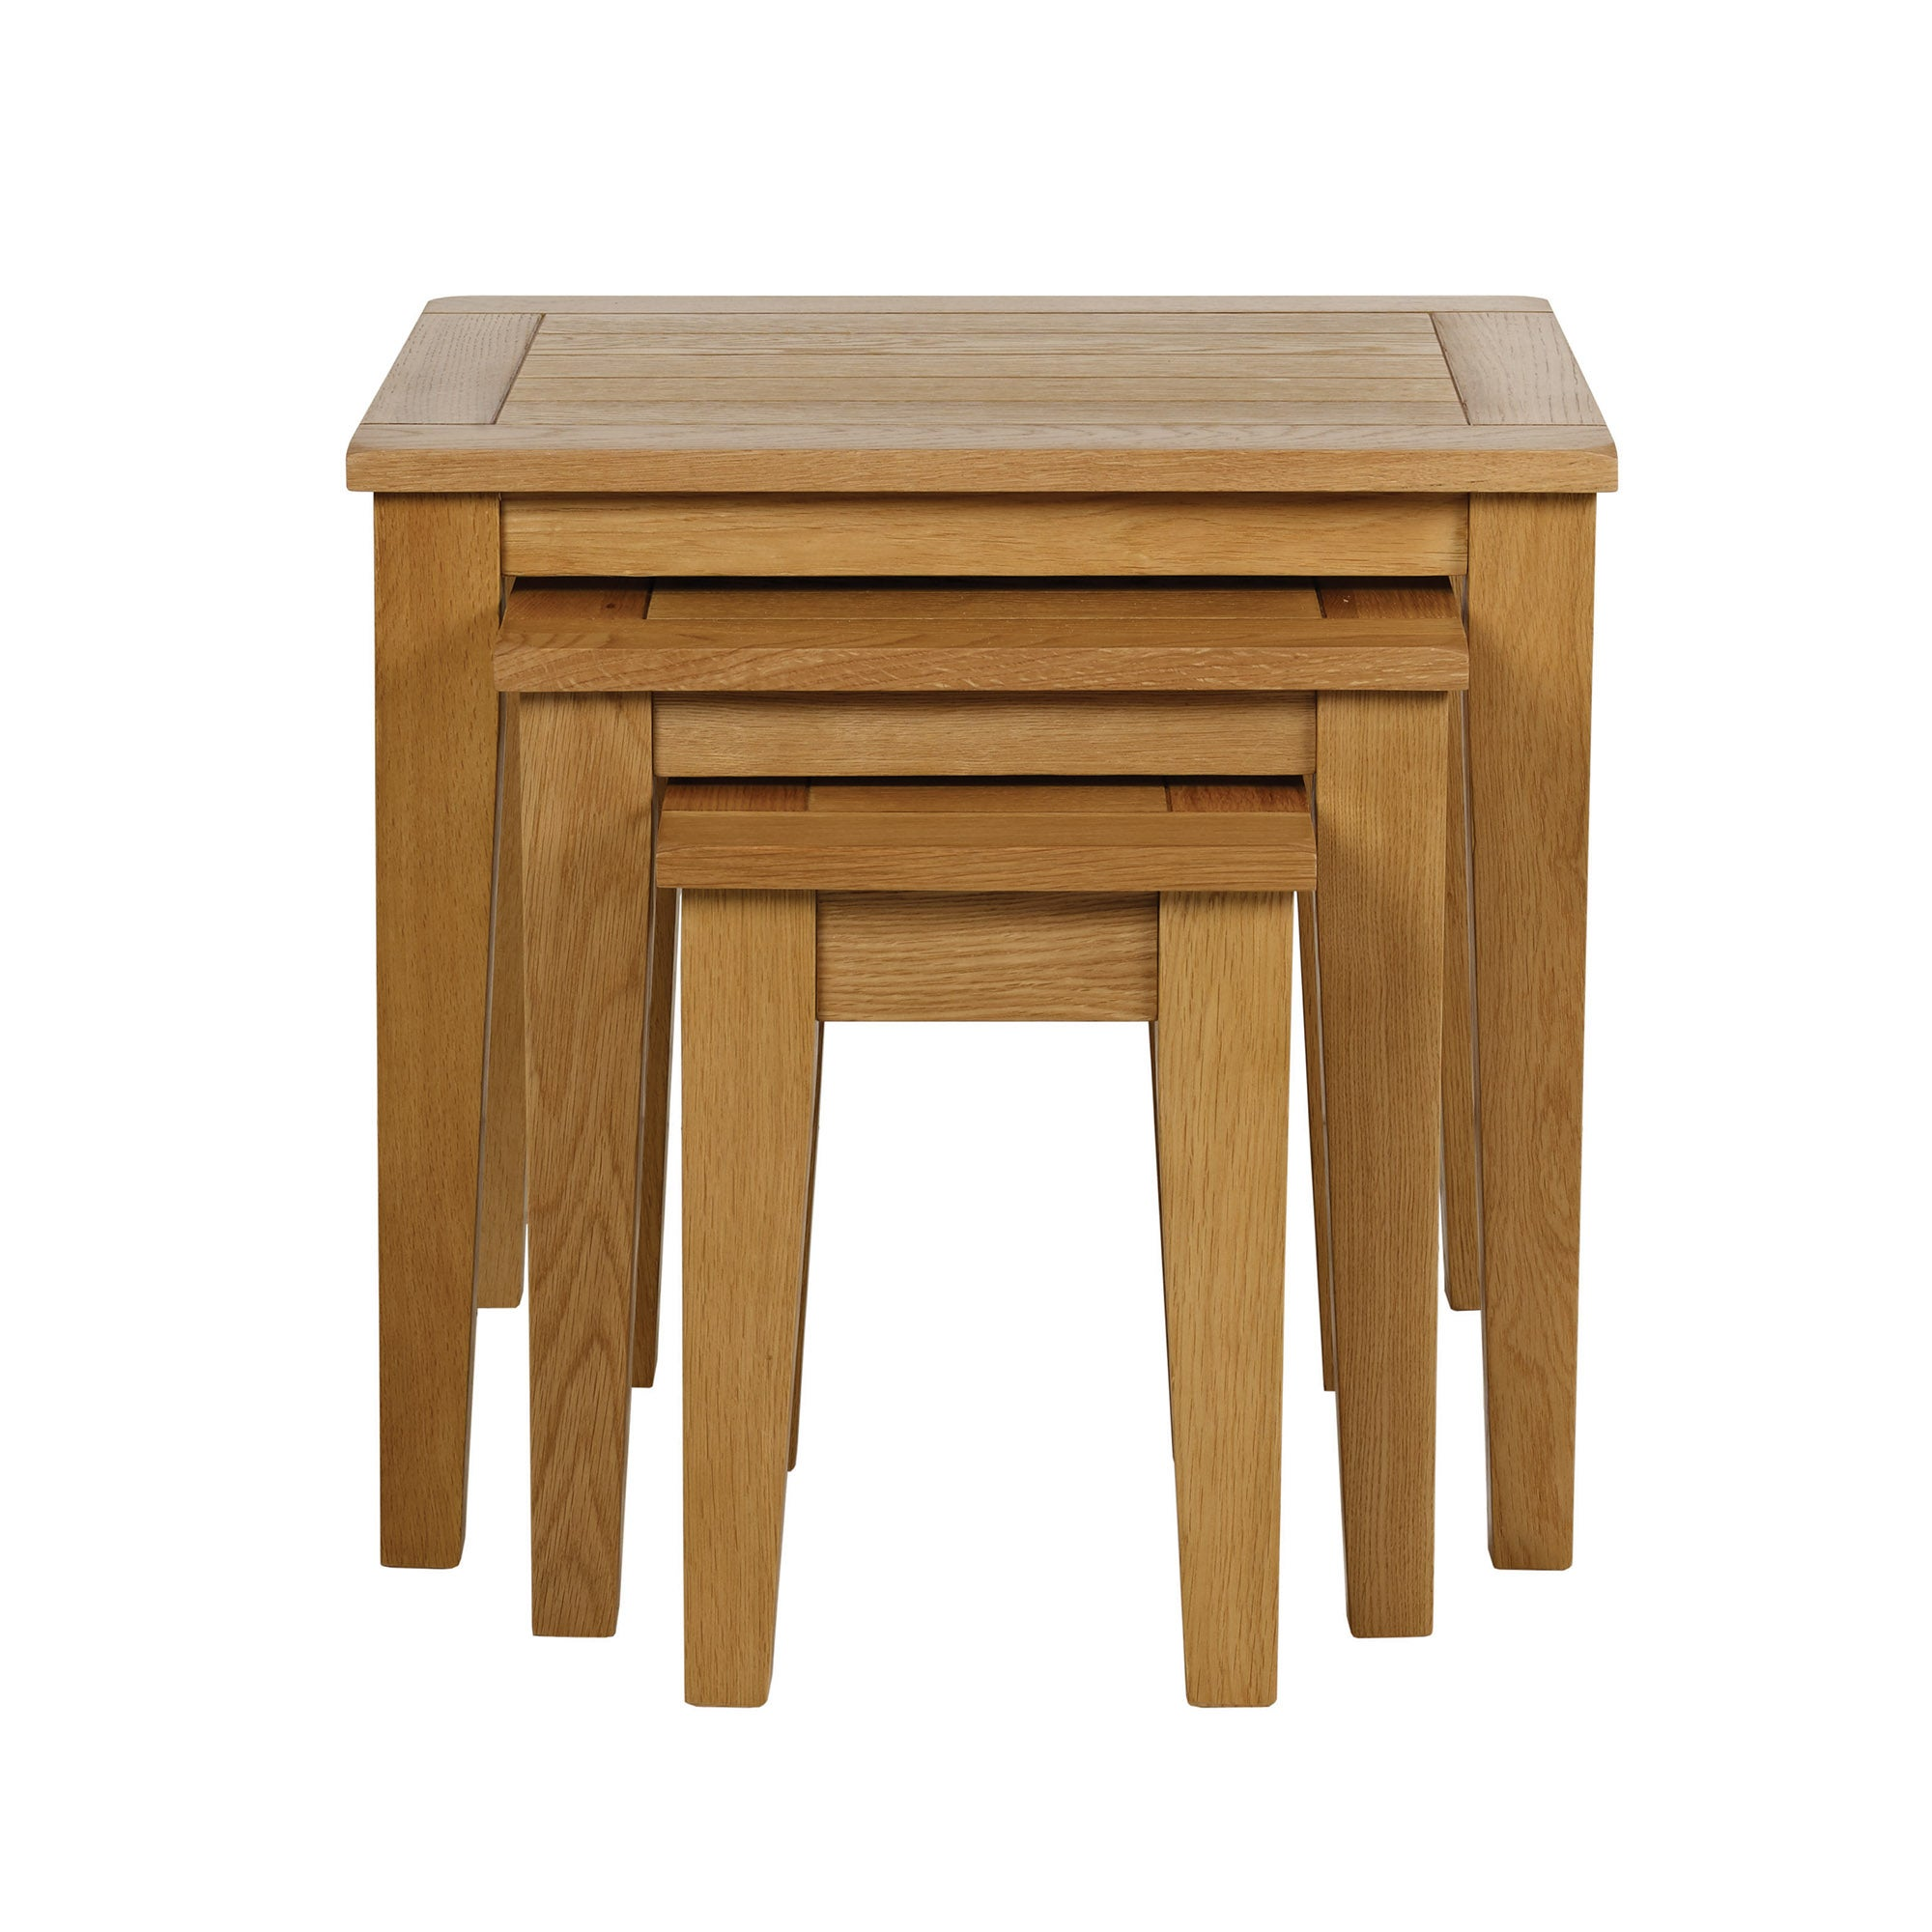 Stamford Natural Oak Nest of Tables